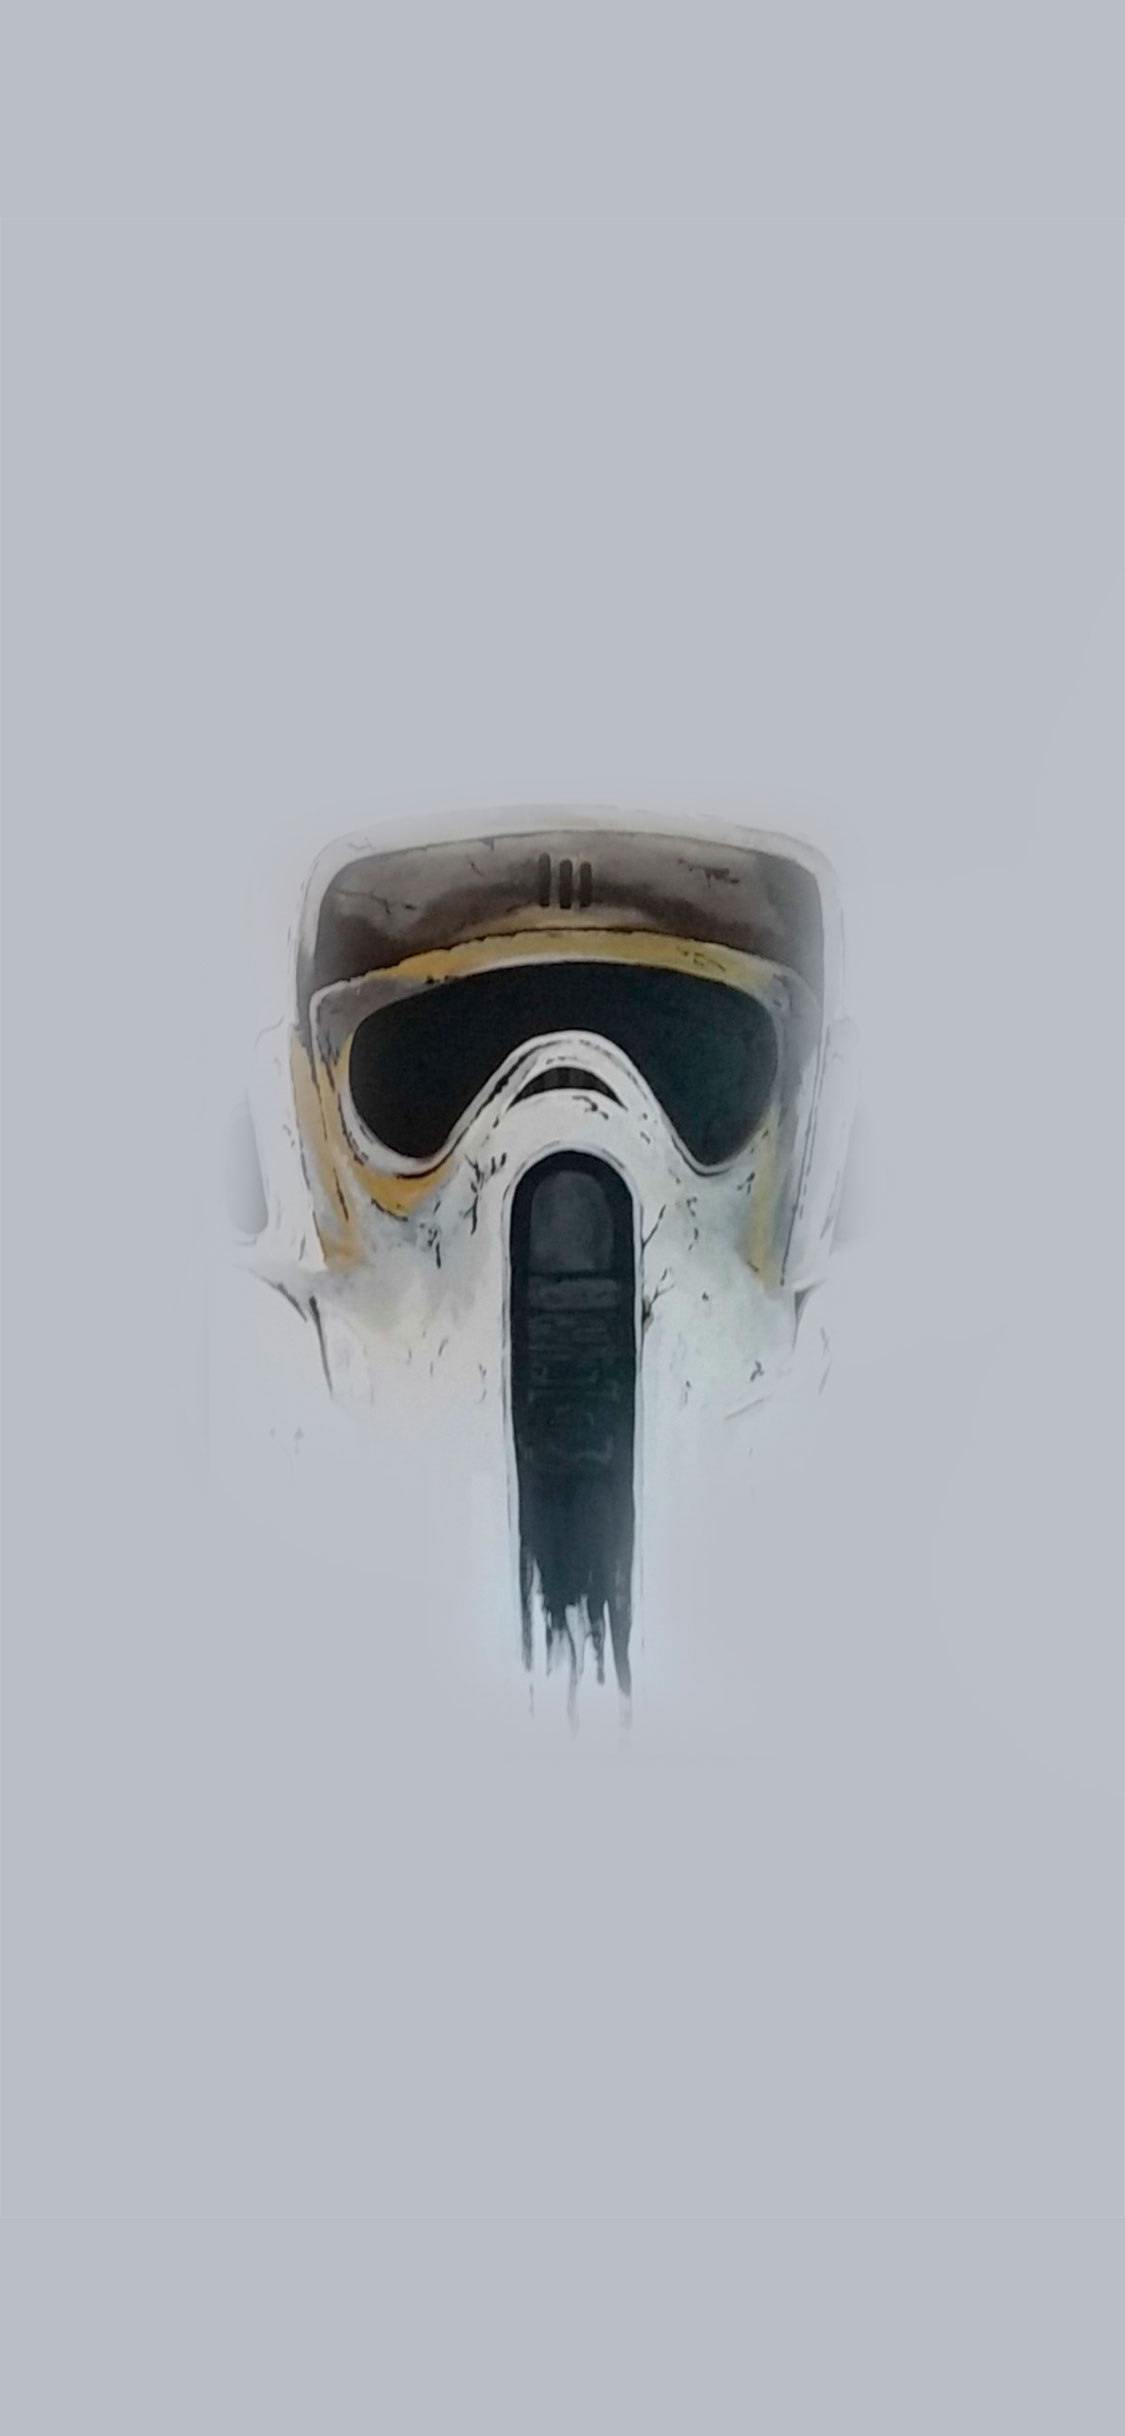 iPhone wallpaper star wars3 Star Wars